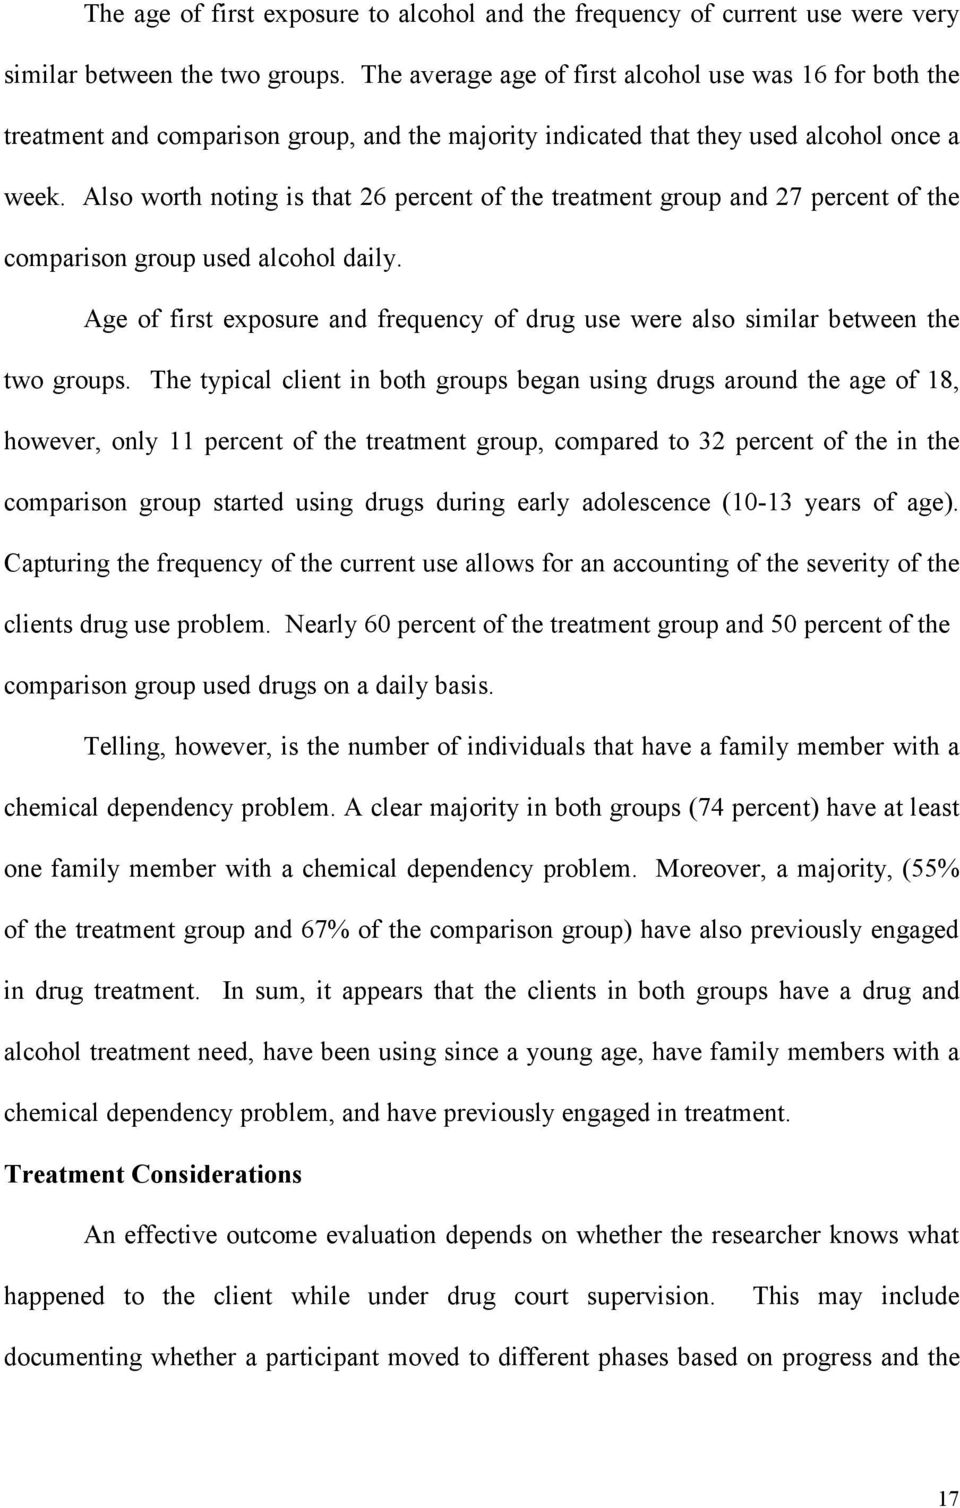 Also worth noting is that 26 percent of the treatment group and 27 percent of the comparison group used alcohol daily.